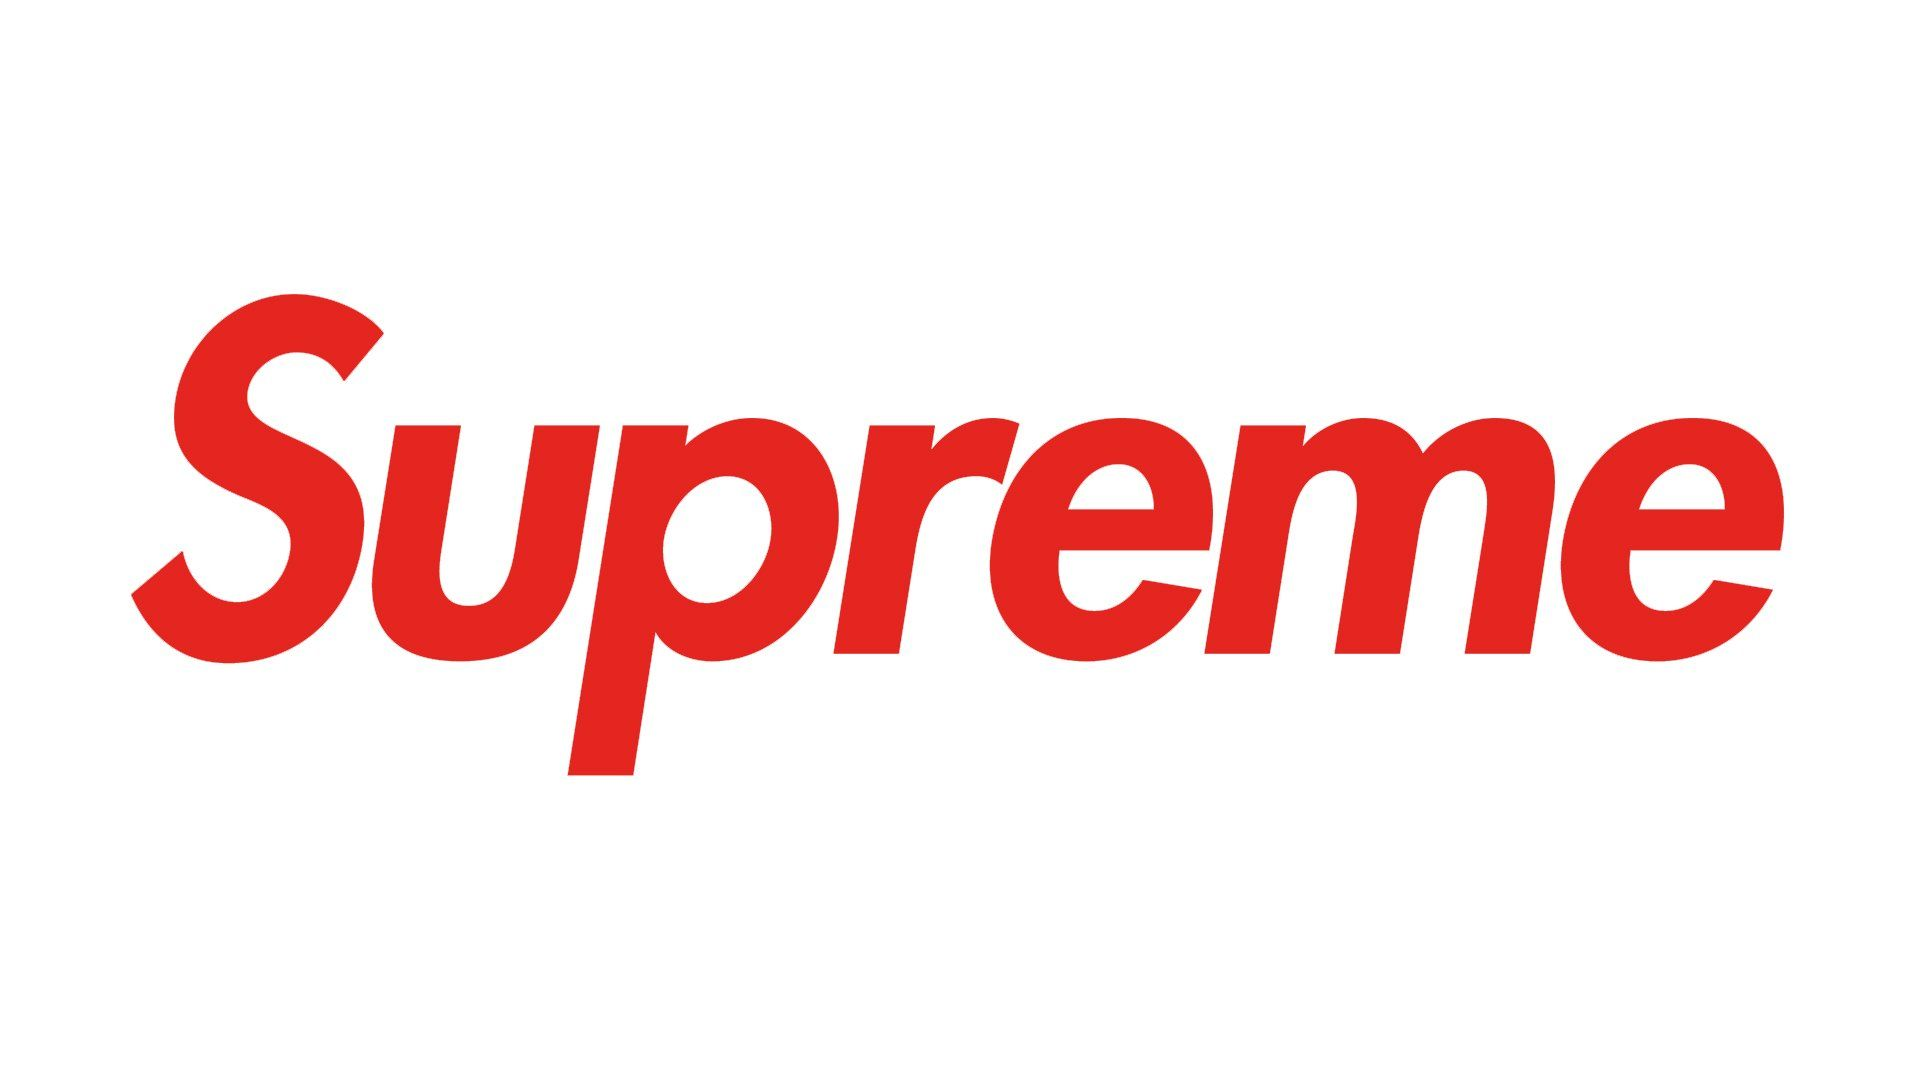 Supreme Logo - Supreme Logo Sticker #1 (TWO) 6